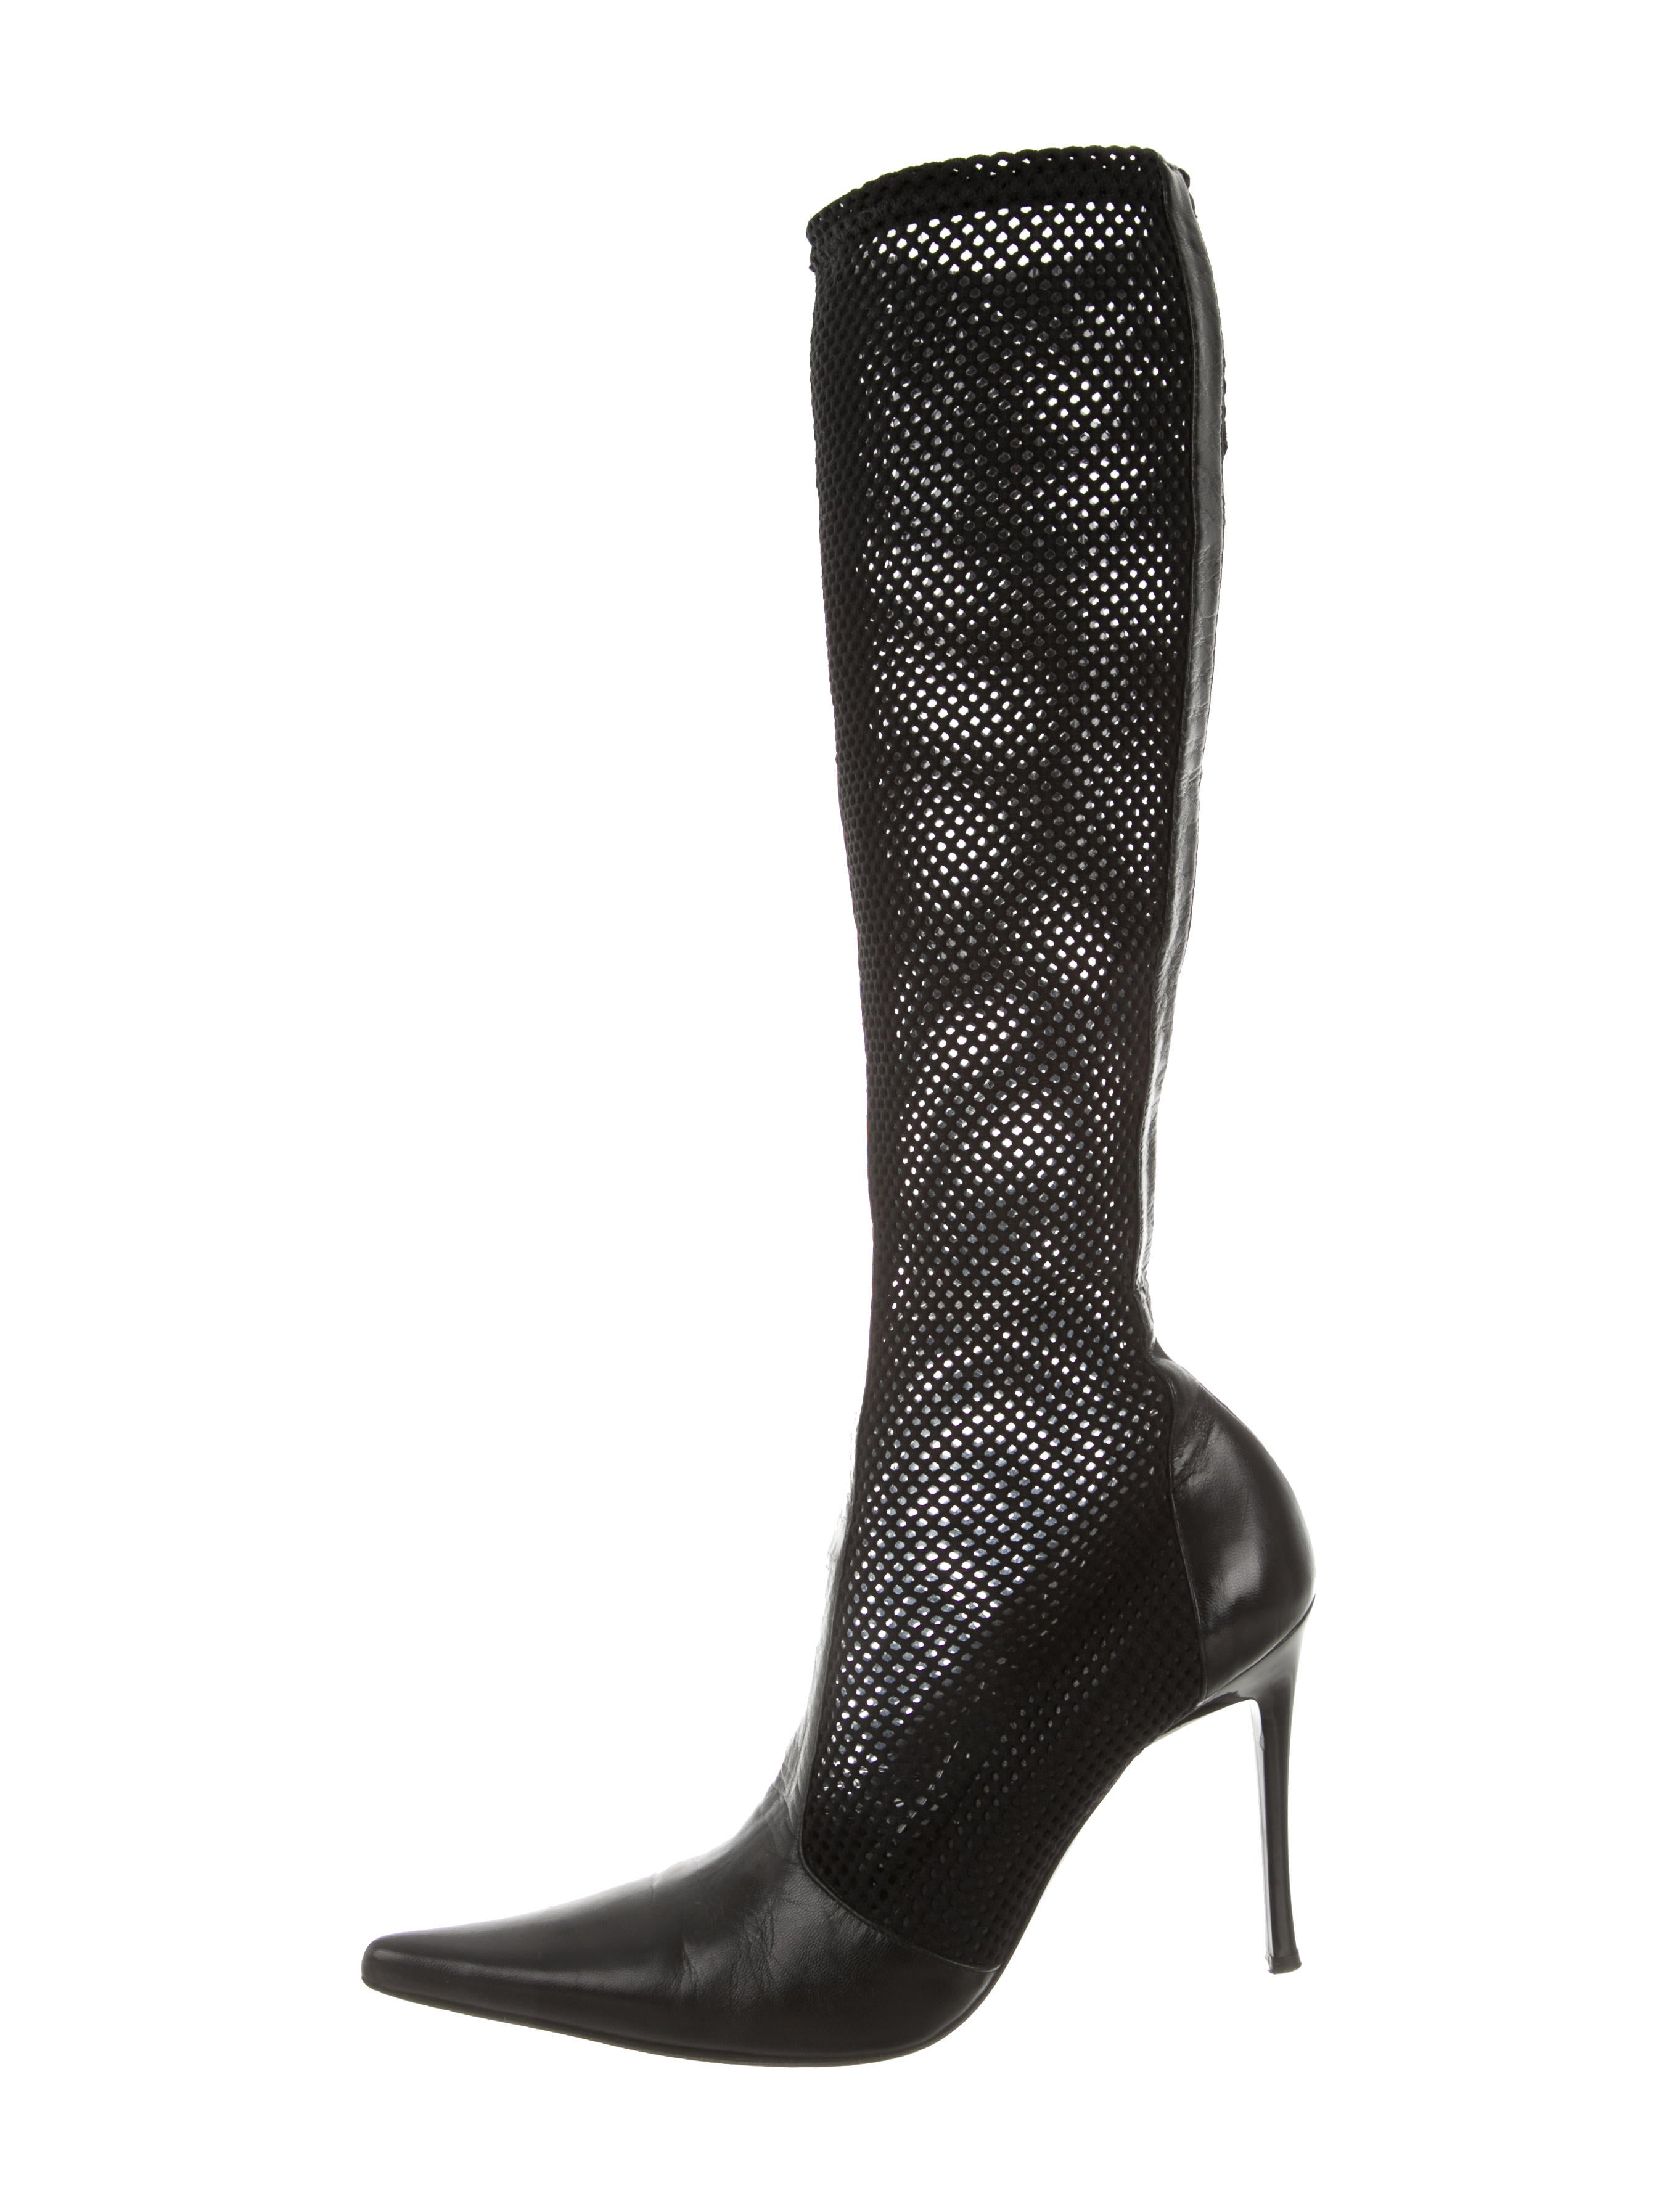 casadei perforated knee high boots shoes cei22200